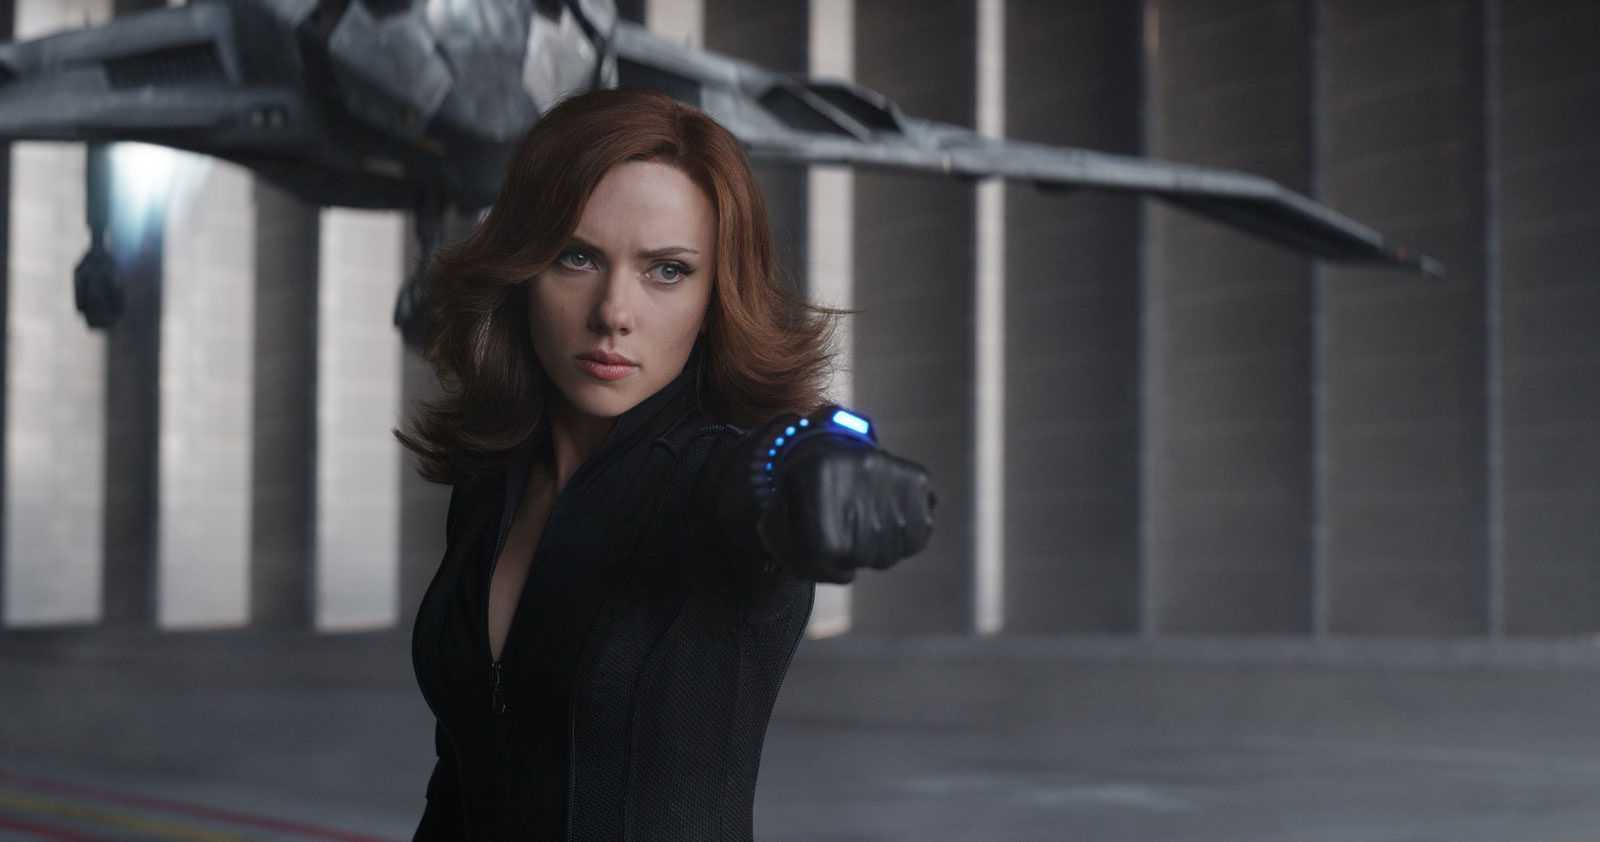 Captain America: Civil War Deleted Scene Shows Black Widow And Black Panther Face Off | Civil War